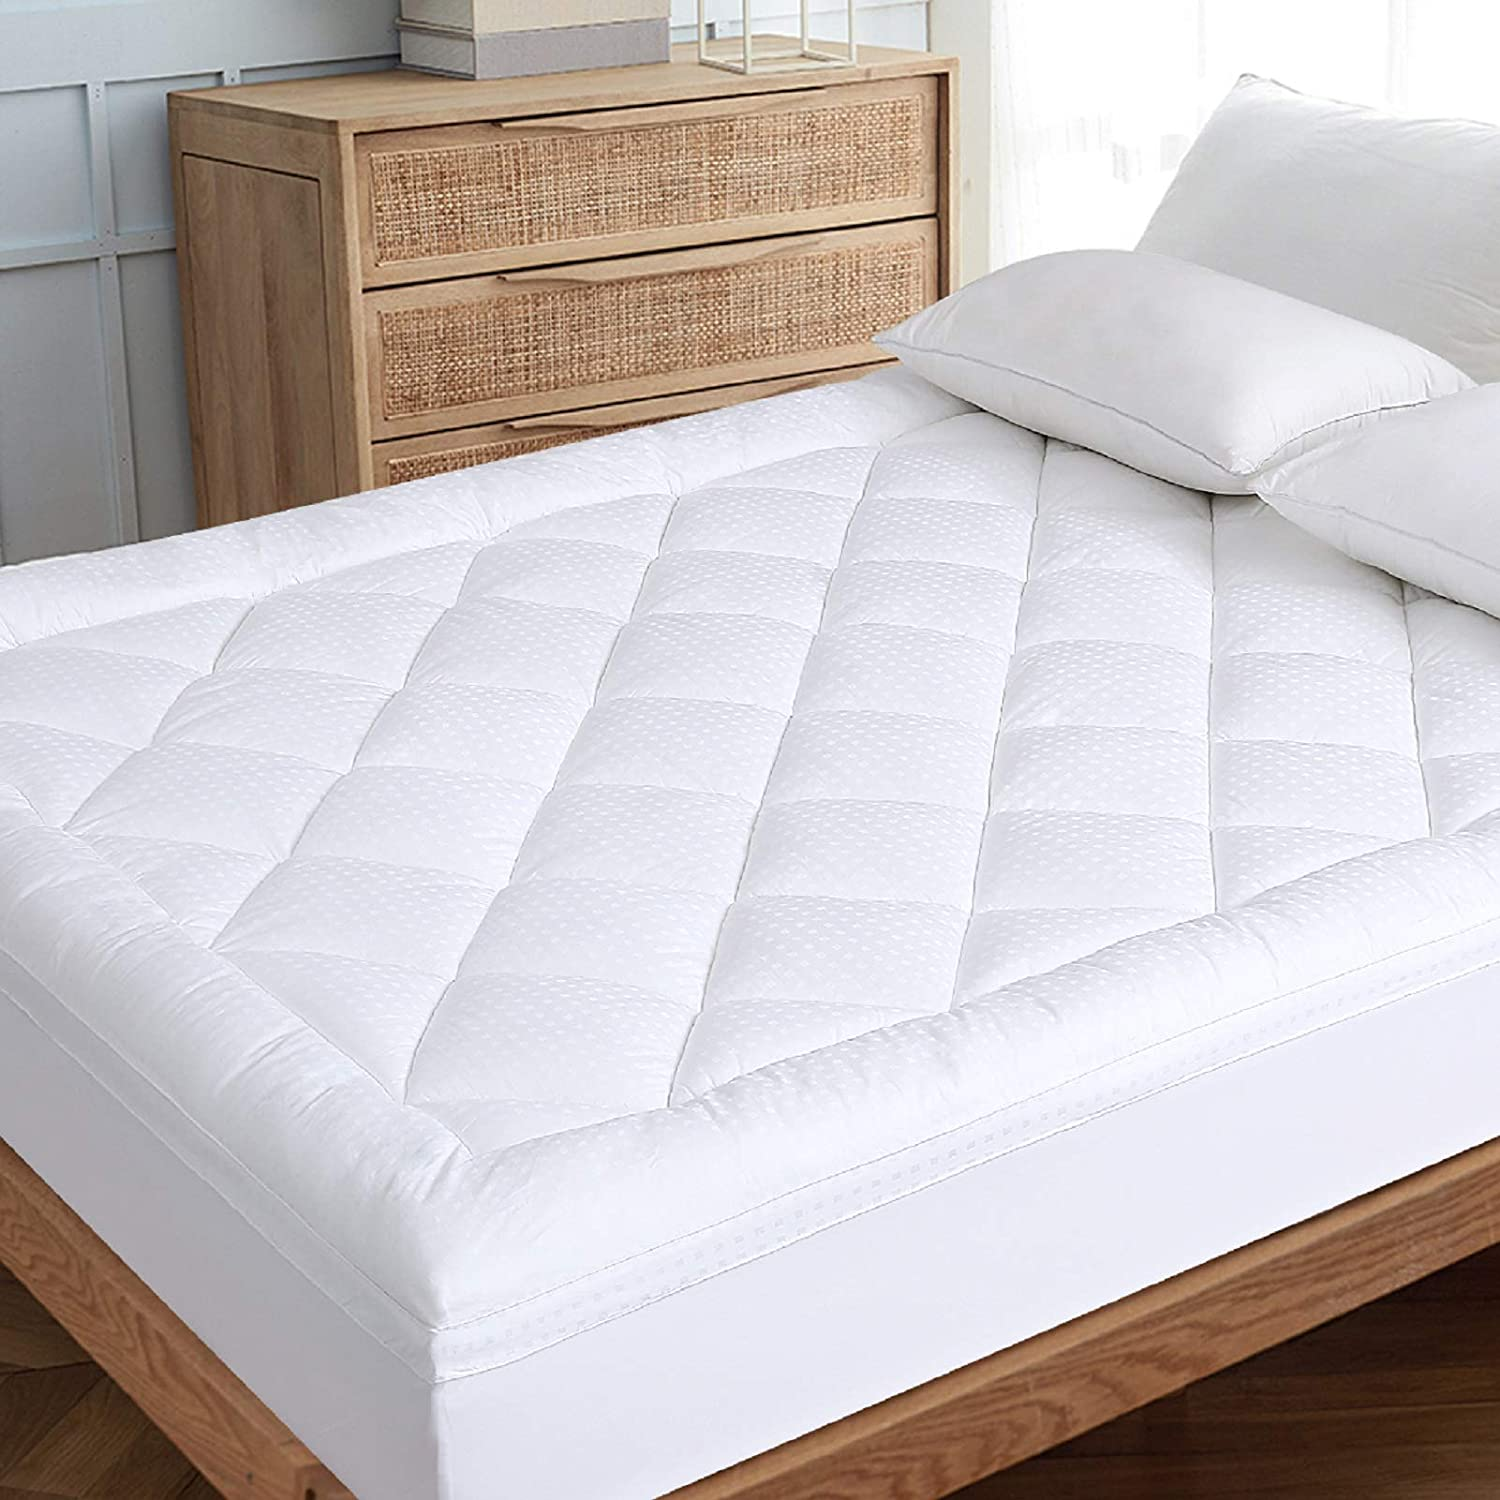 """EDILLY Queen Extra Thick Mattress Pad Cooling Mattress Topper Cover Cotton Top Pillow Top with Hypoallergenic Down Alternative Fill(8-21"""" Fitted Deep Pocket Queen Size)"""